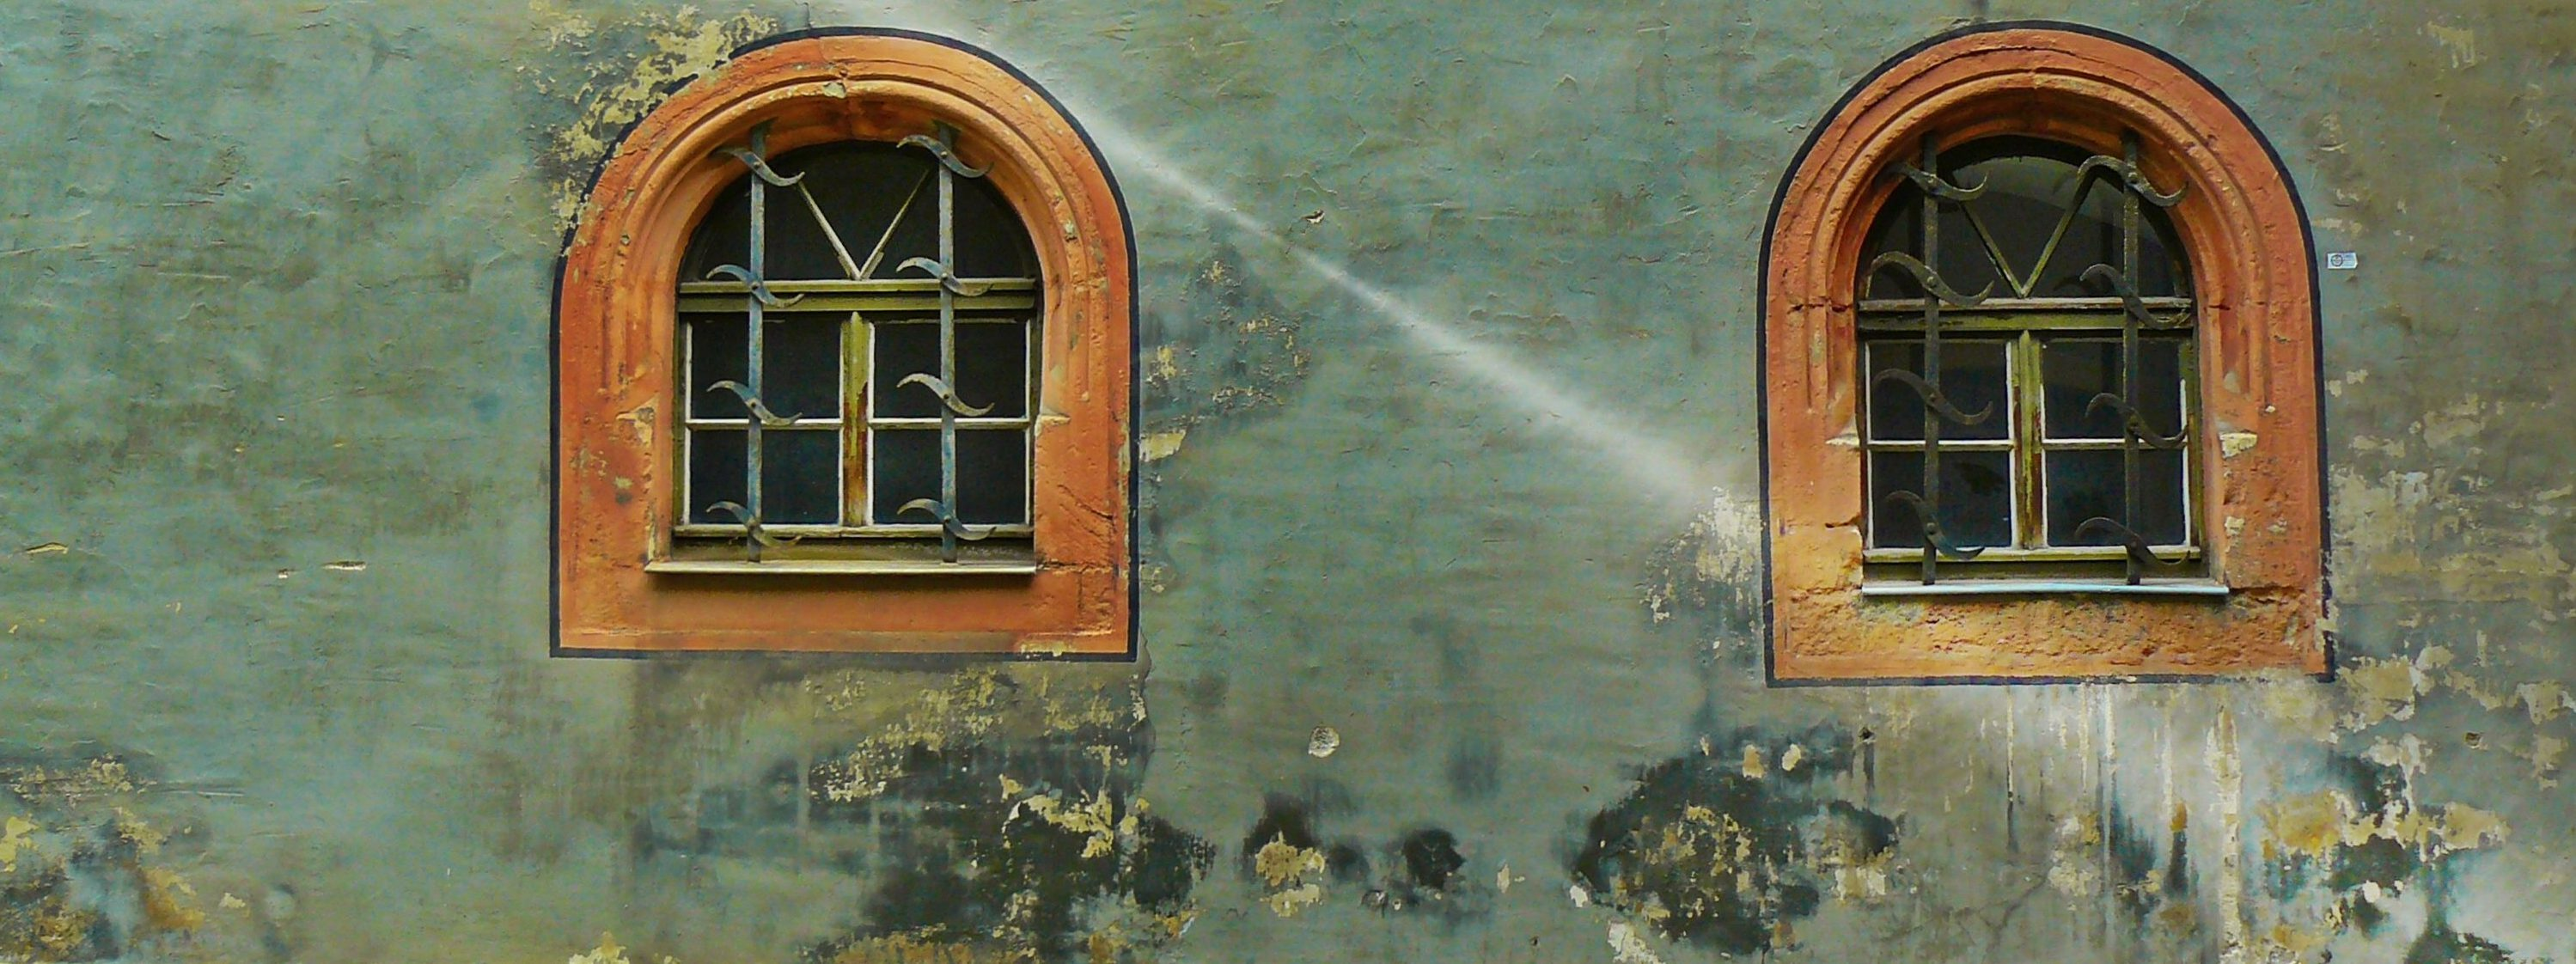 mould old house